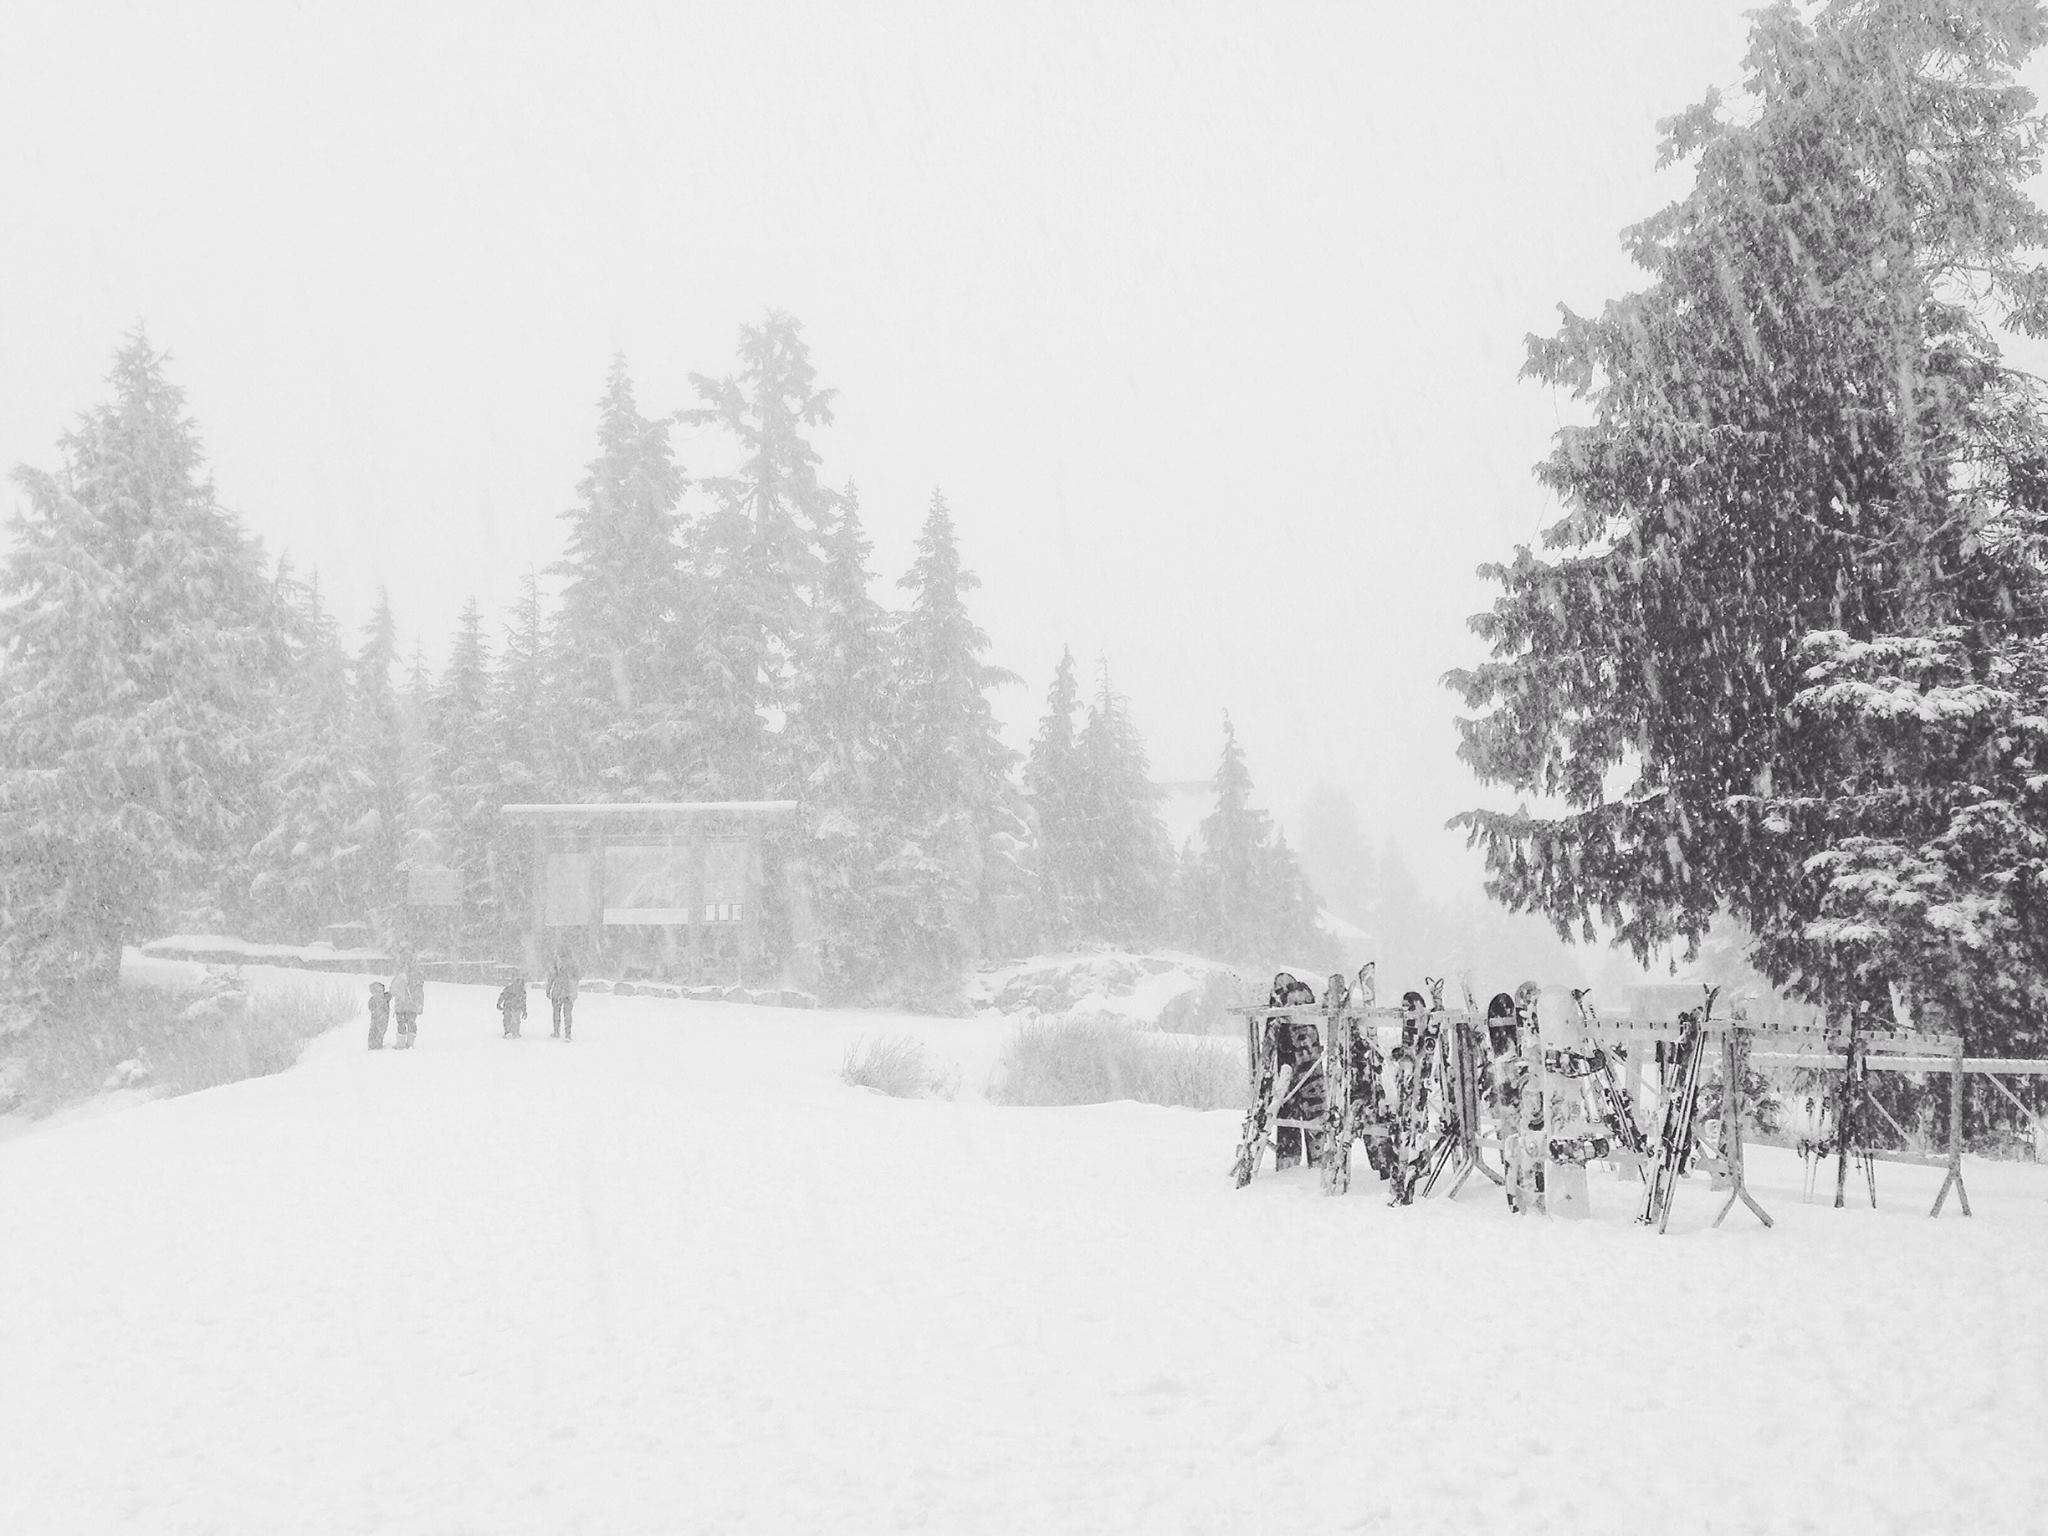 Image: Grouse Mountain via Facebook